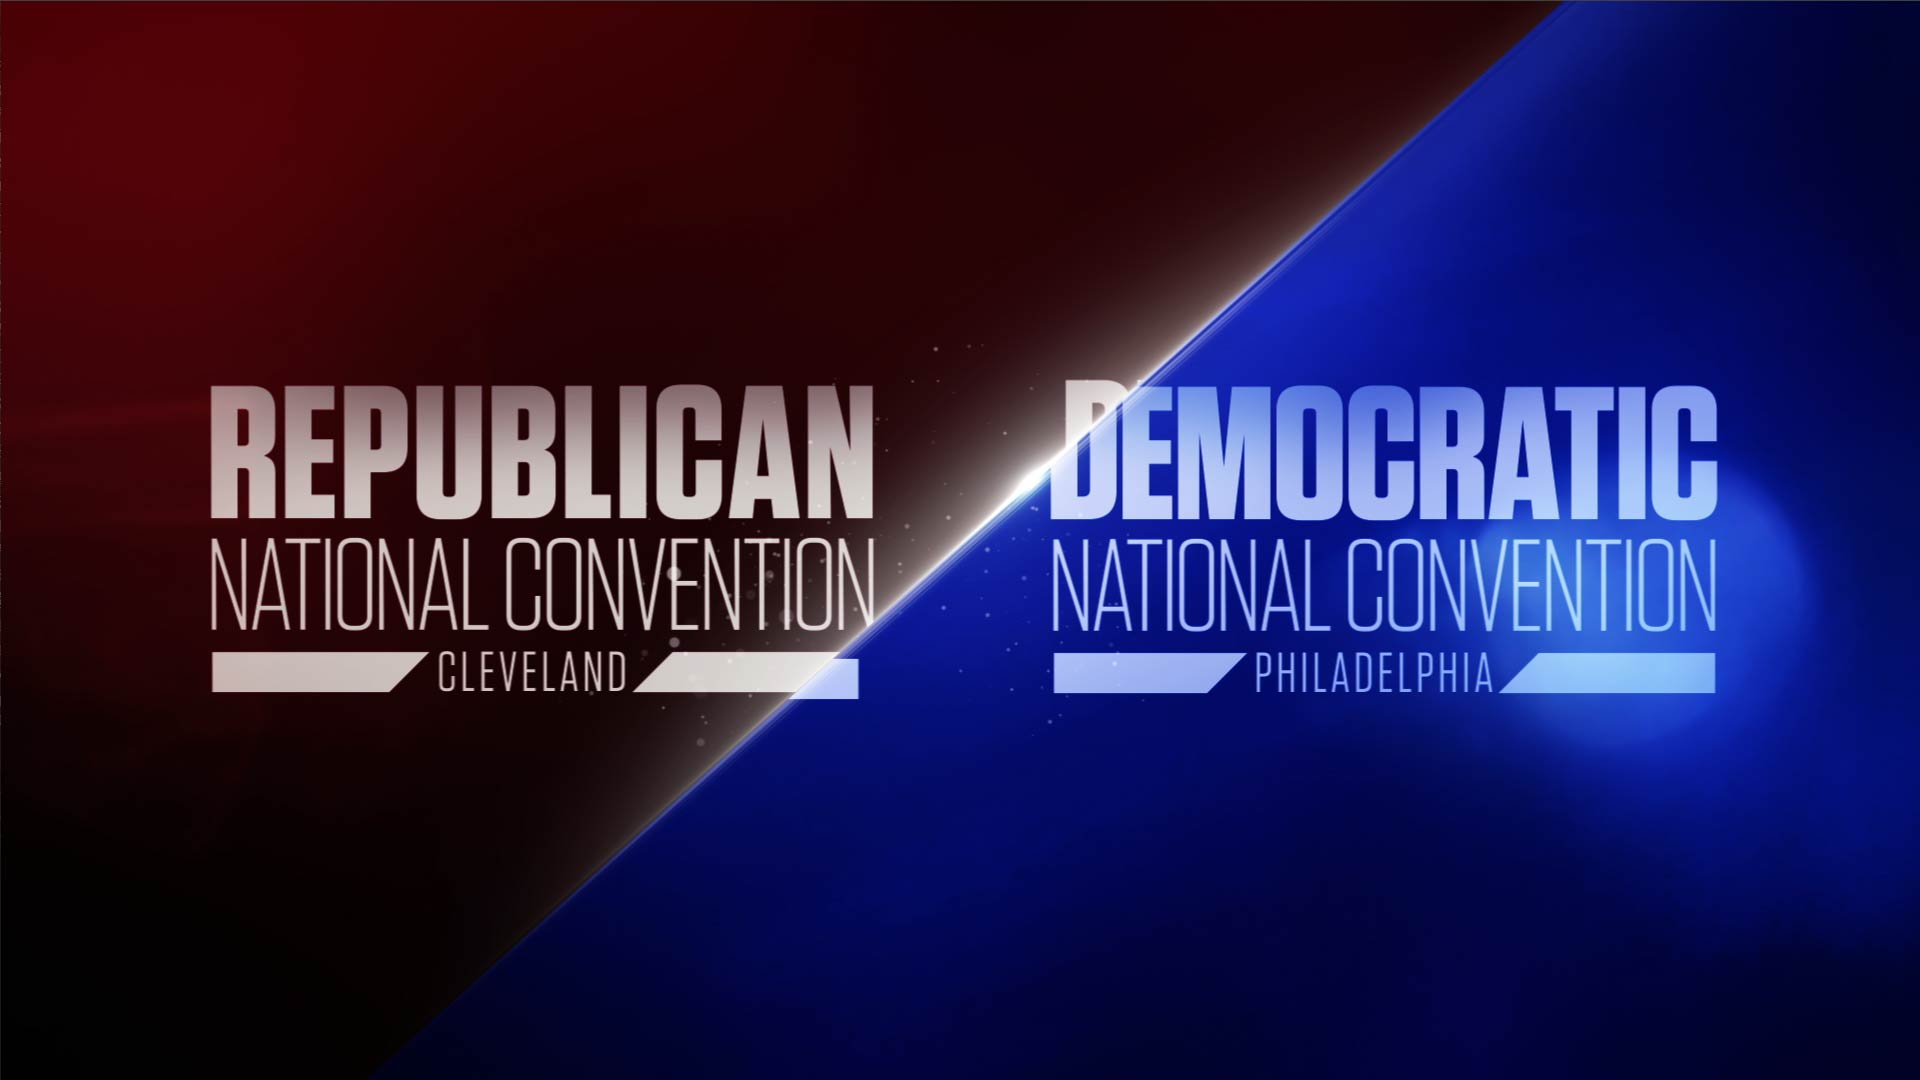 CNN to Deliver 24-Hour, Cross-Platform Coverage from Republican and Democratic National Conventions